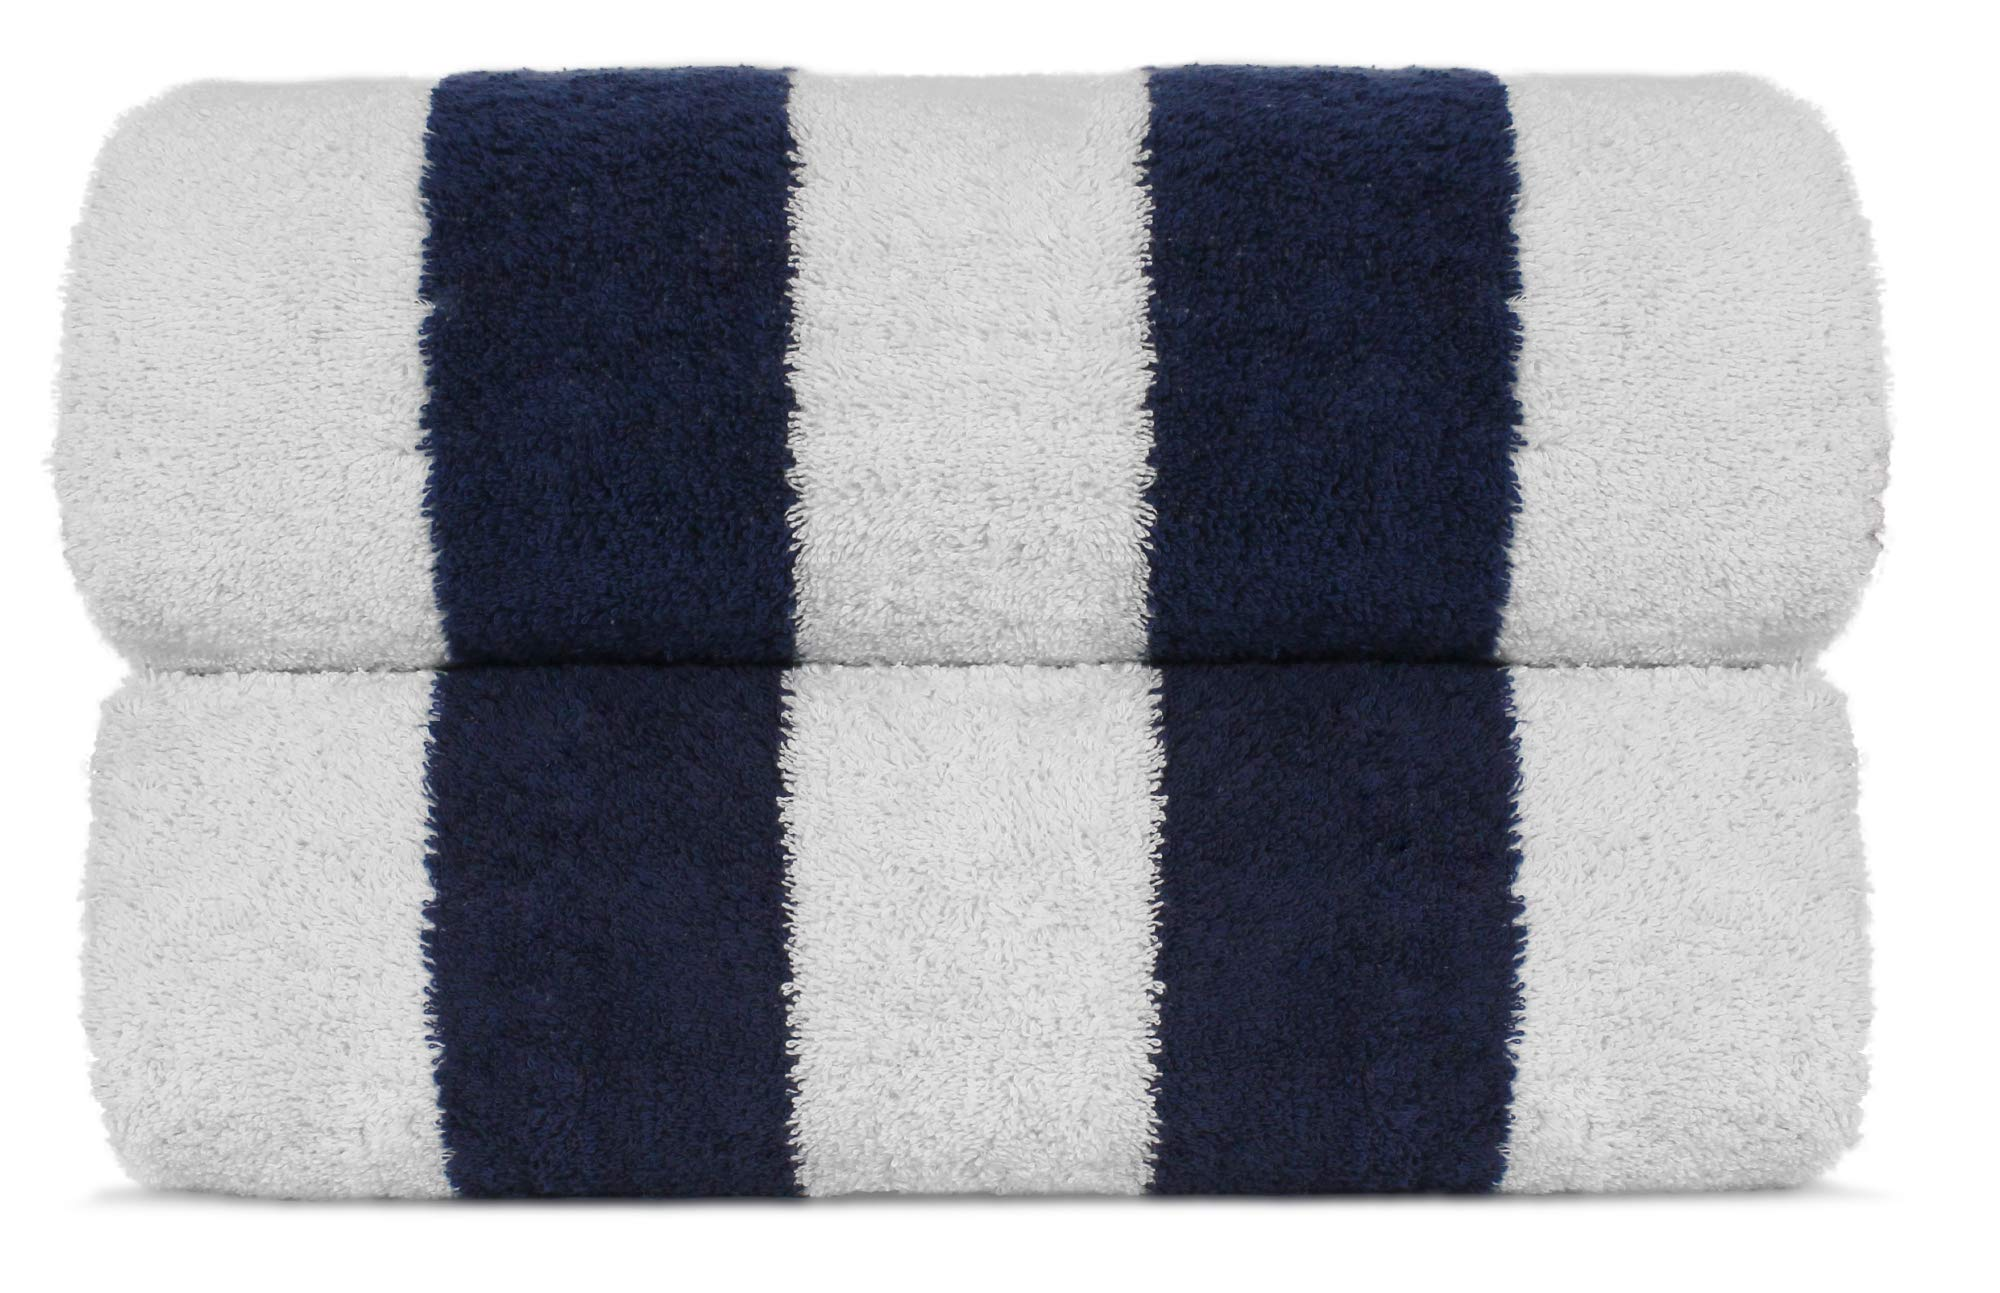 Premium Quality Extra Large Hotel and Spa 2-Piece Beach Towels, Pool Towels with Cabana Stripe, Eco-Friendly, Turkish Cotton (Navy, 35x65 inches)